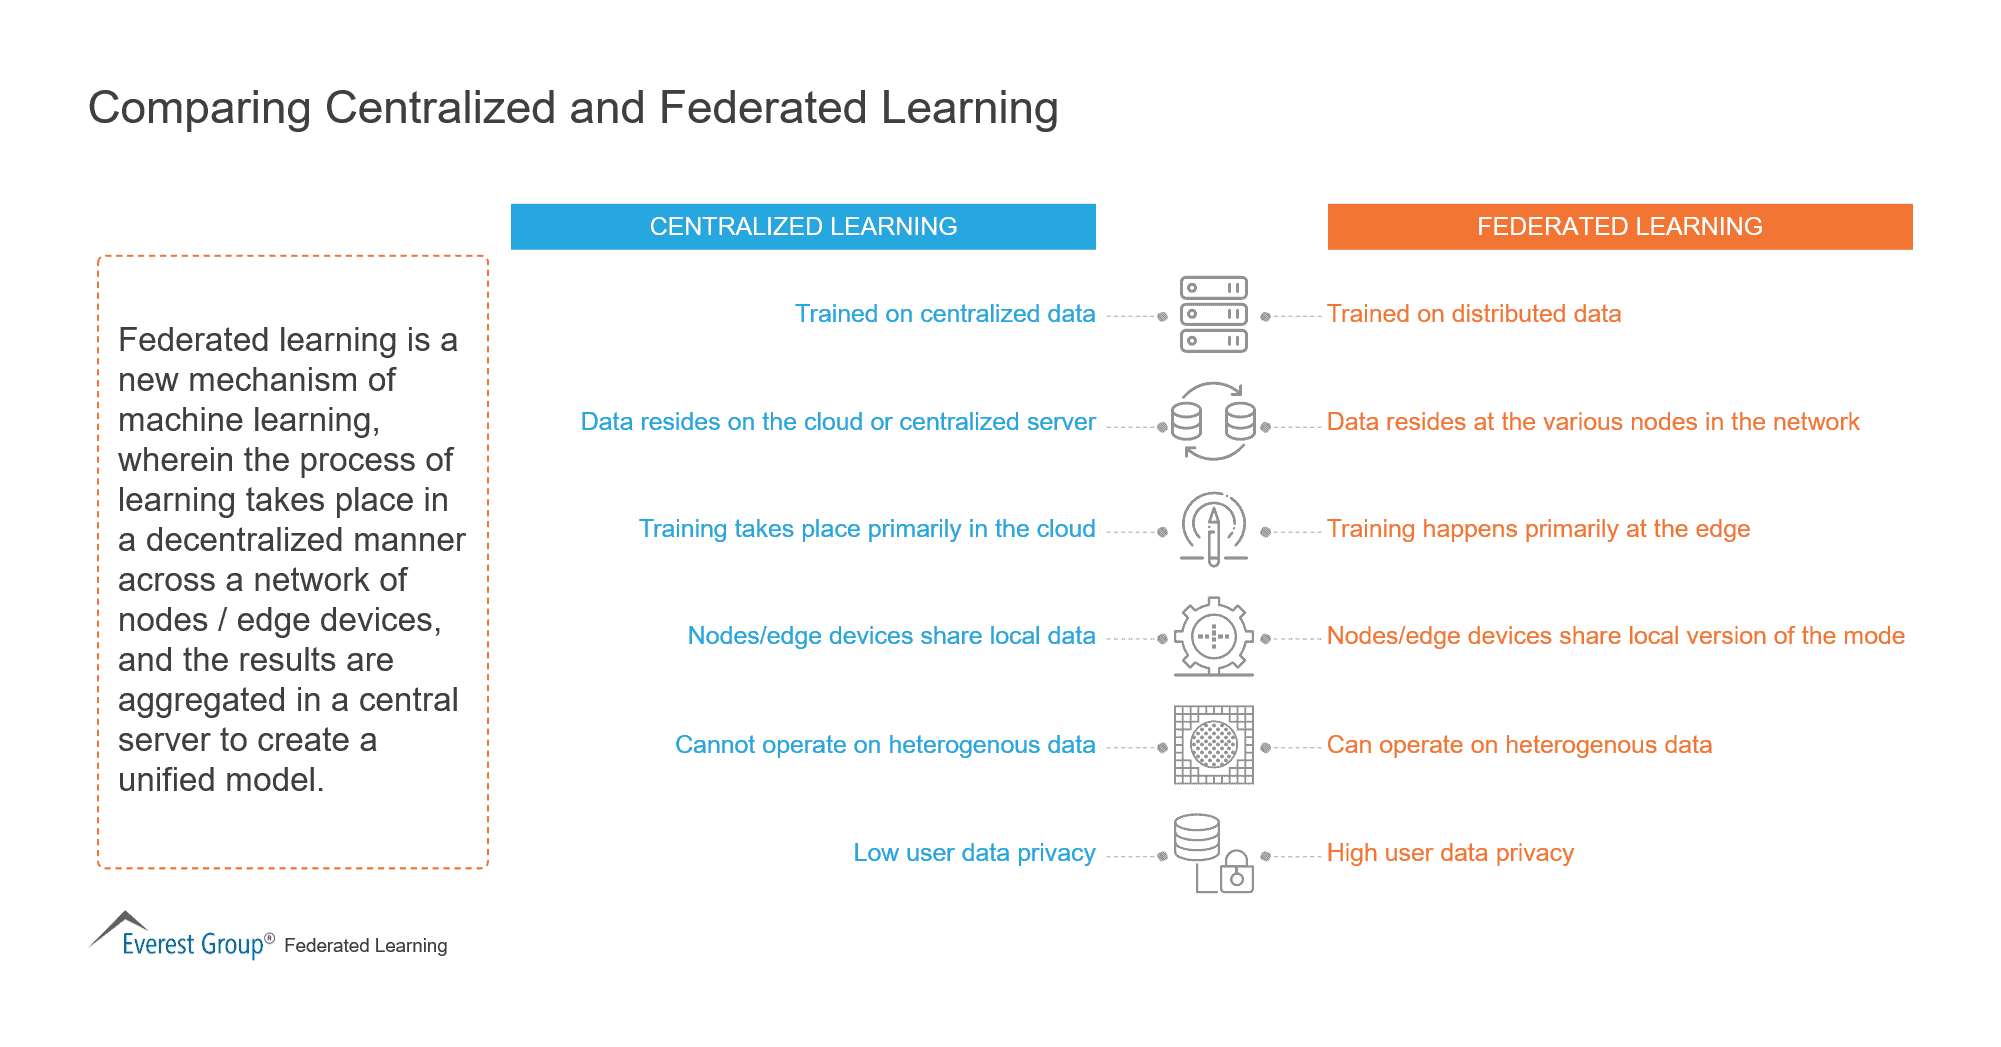 Comparing Centralized and Federated Learning